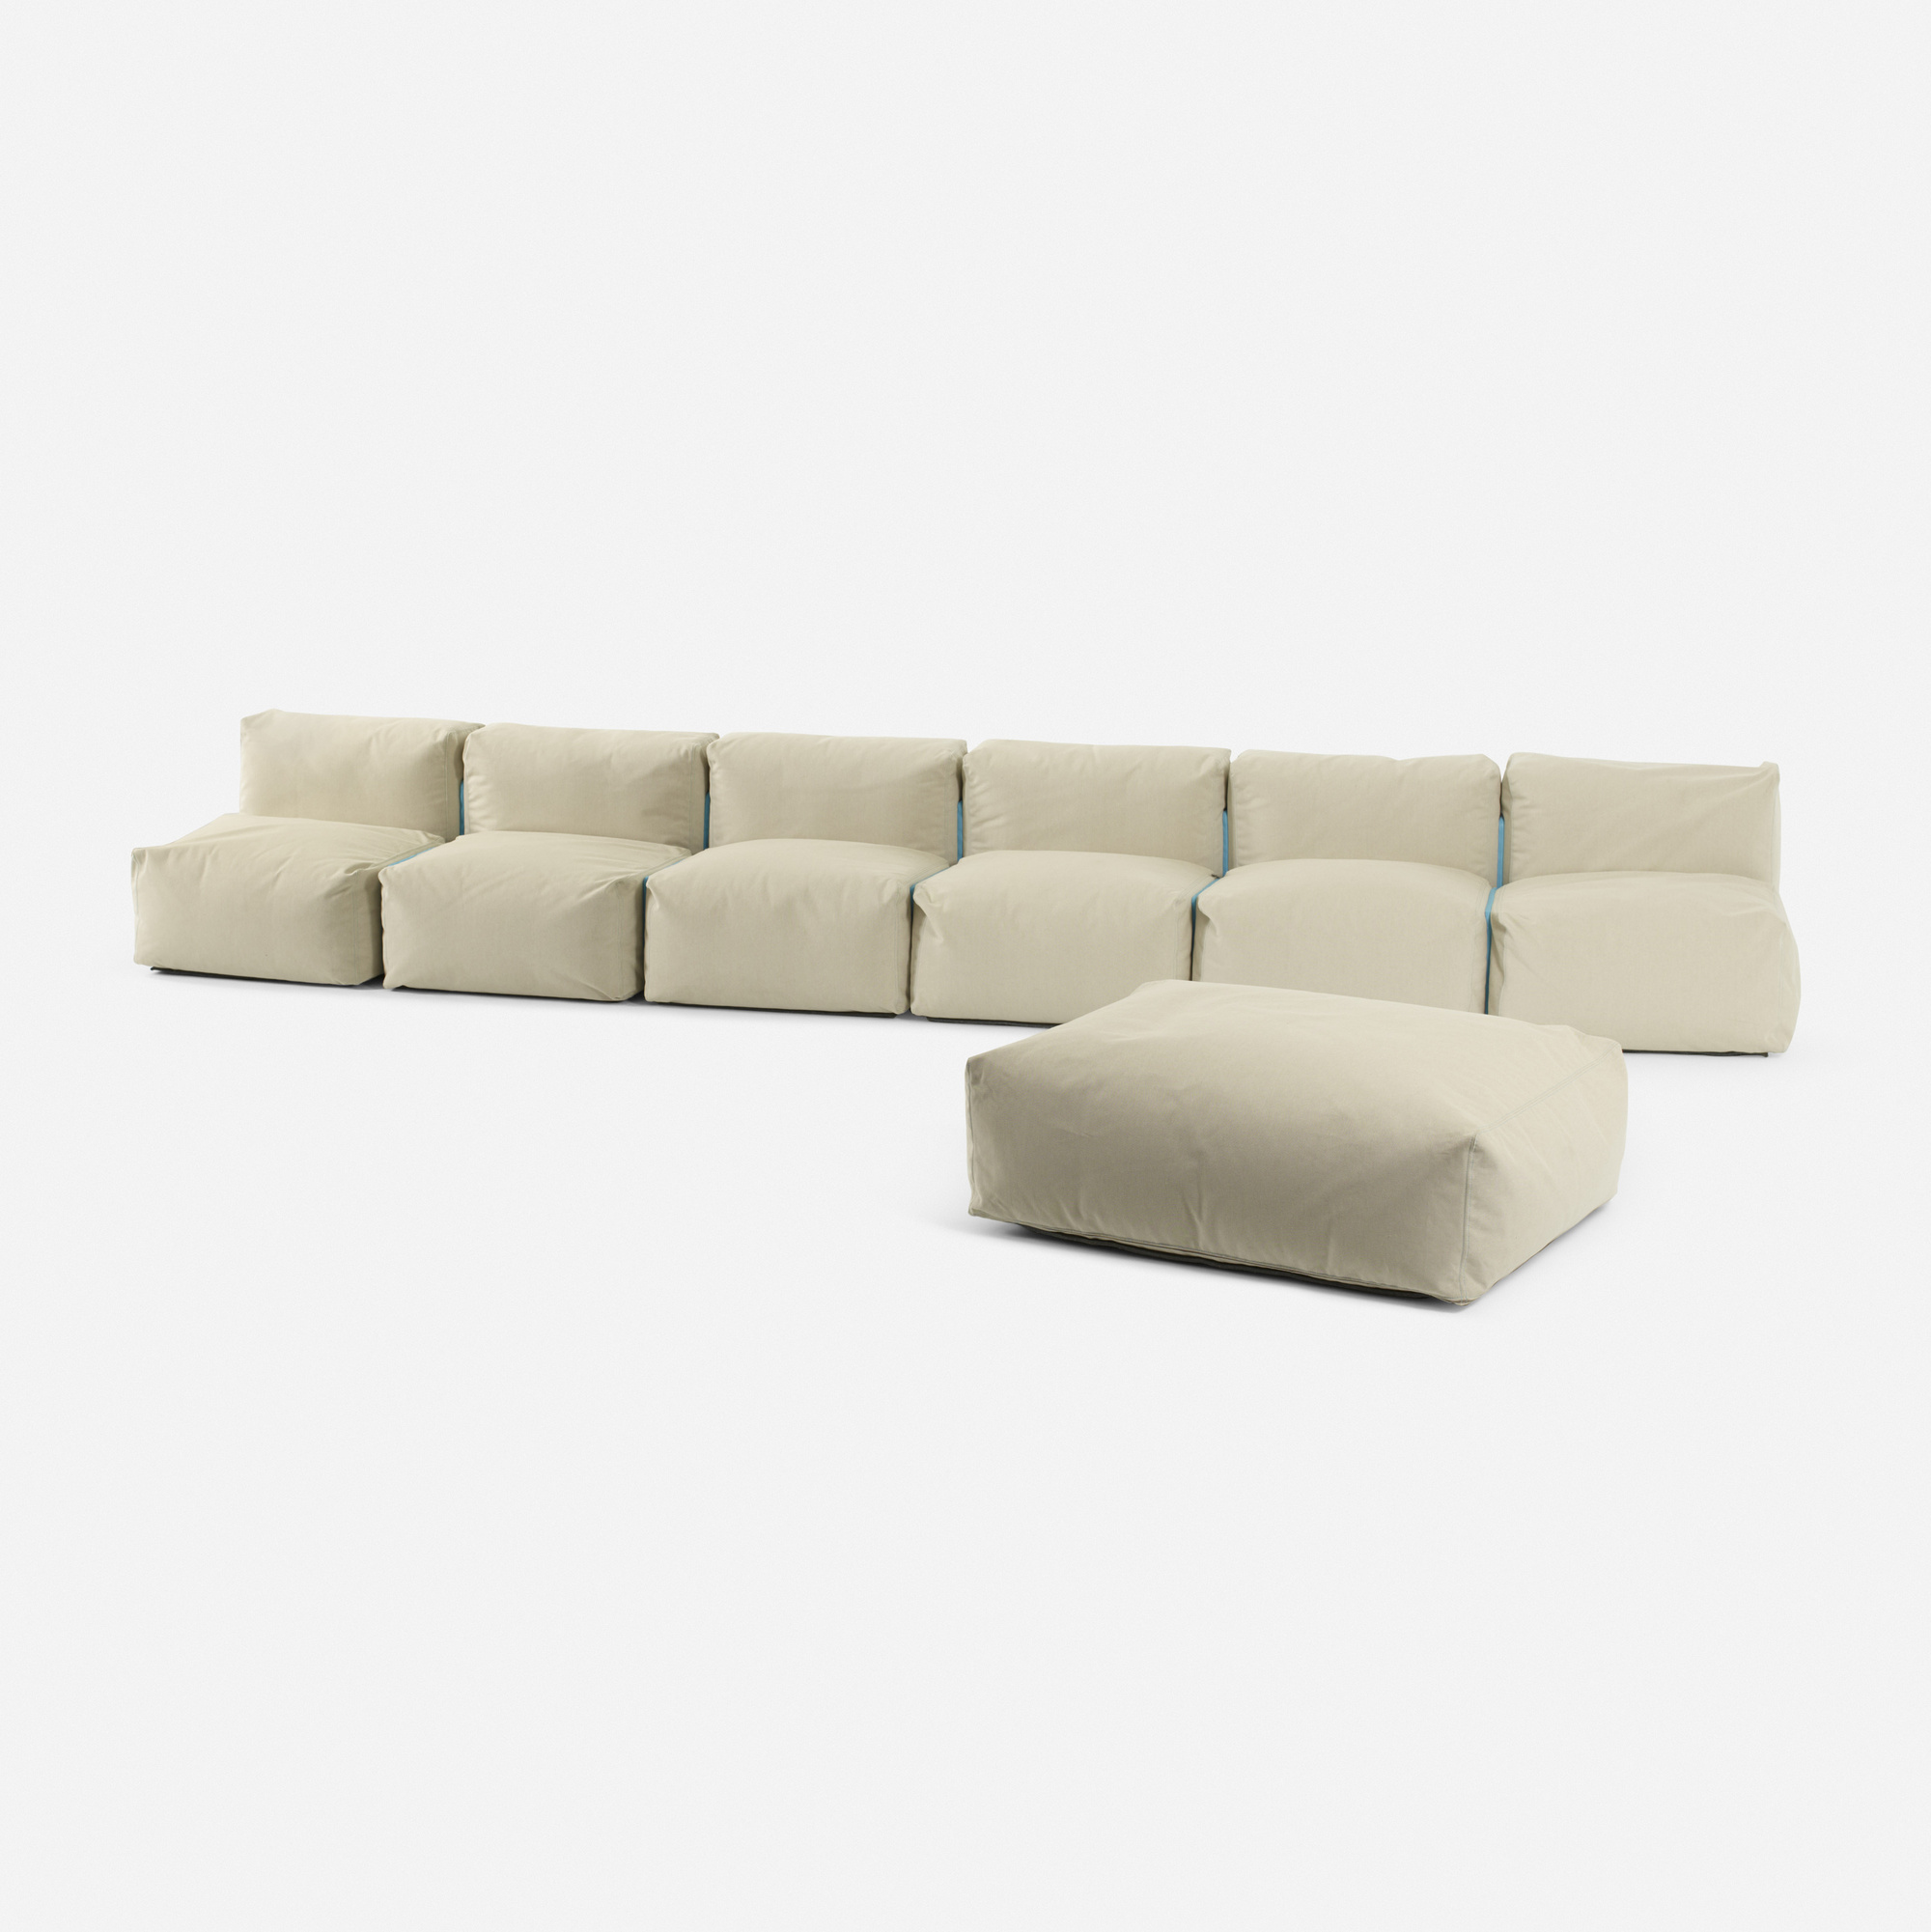 308 Jasper Morrison Superoblong Sofa 1 Of 3